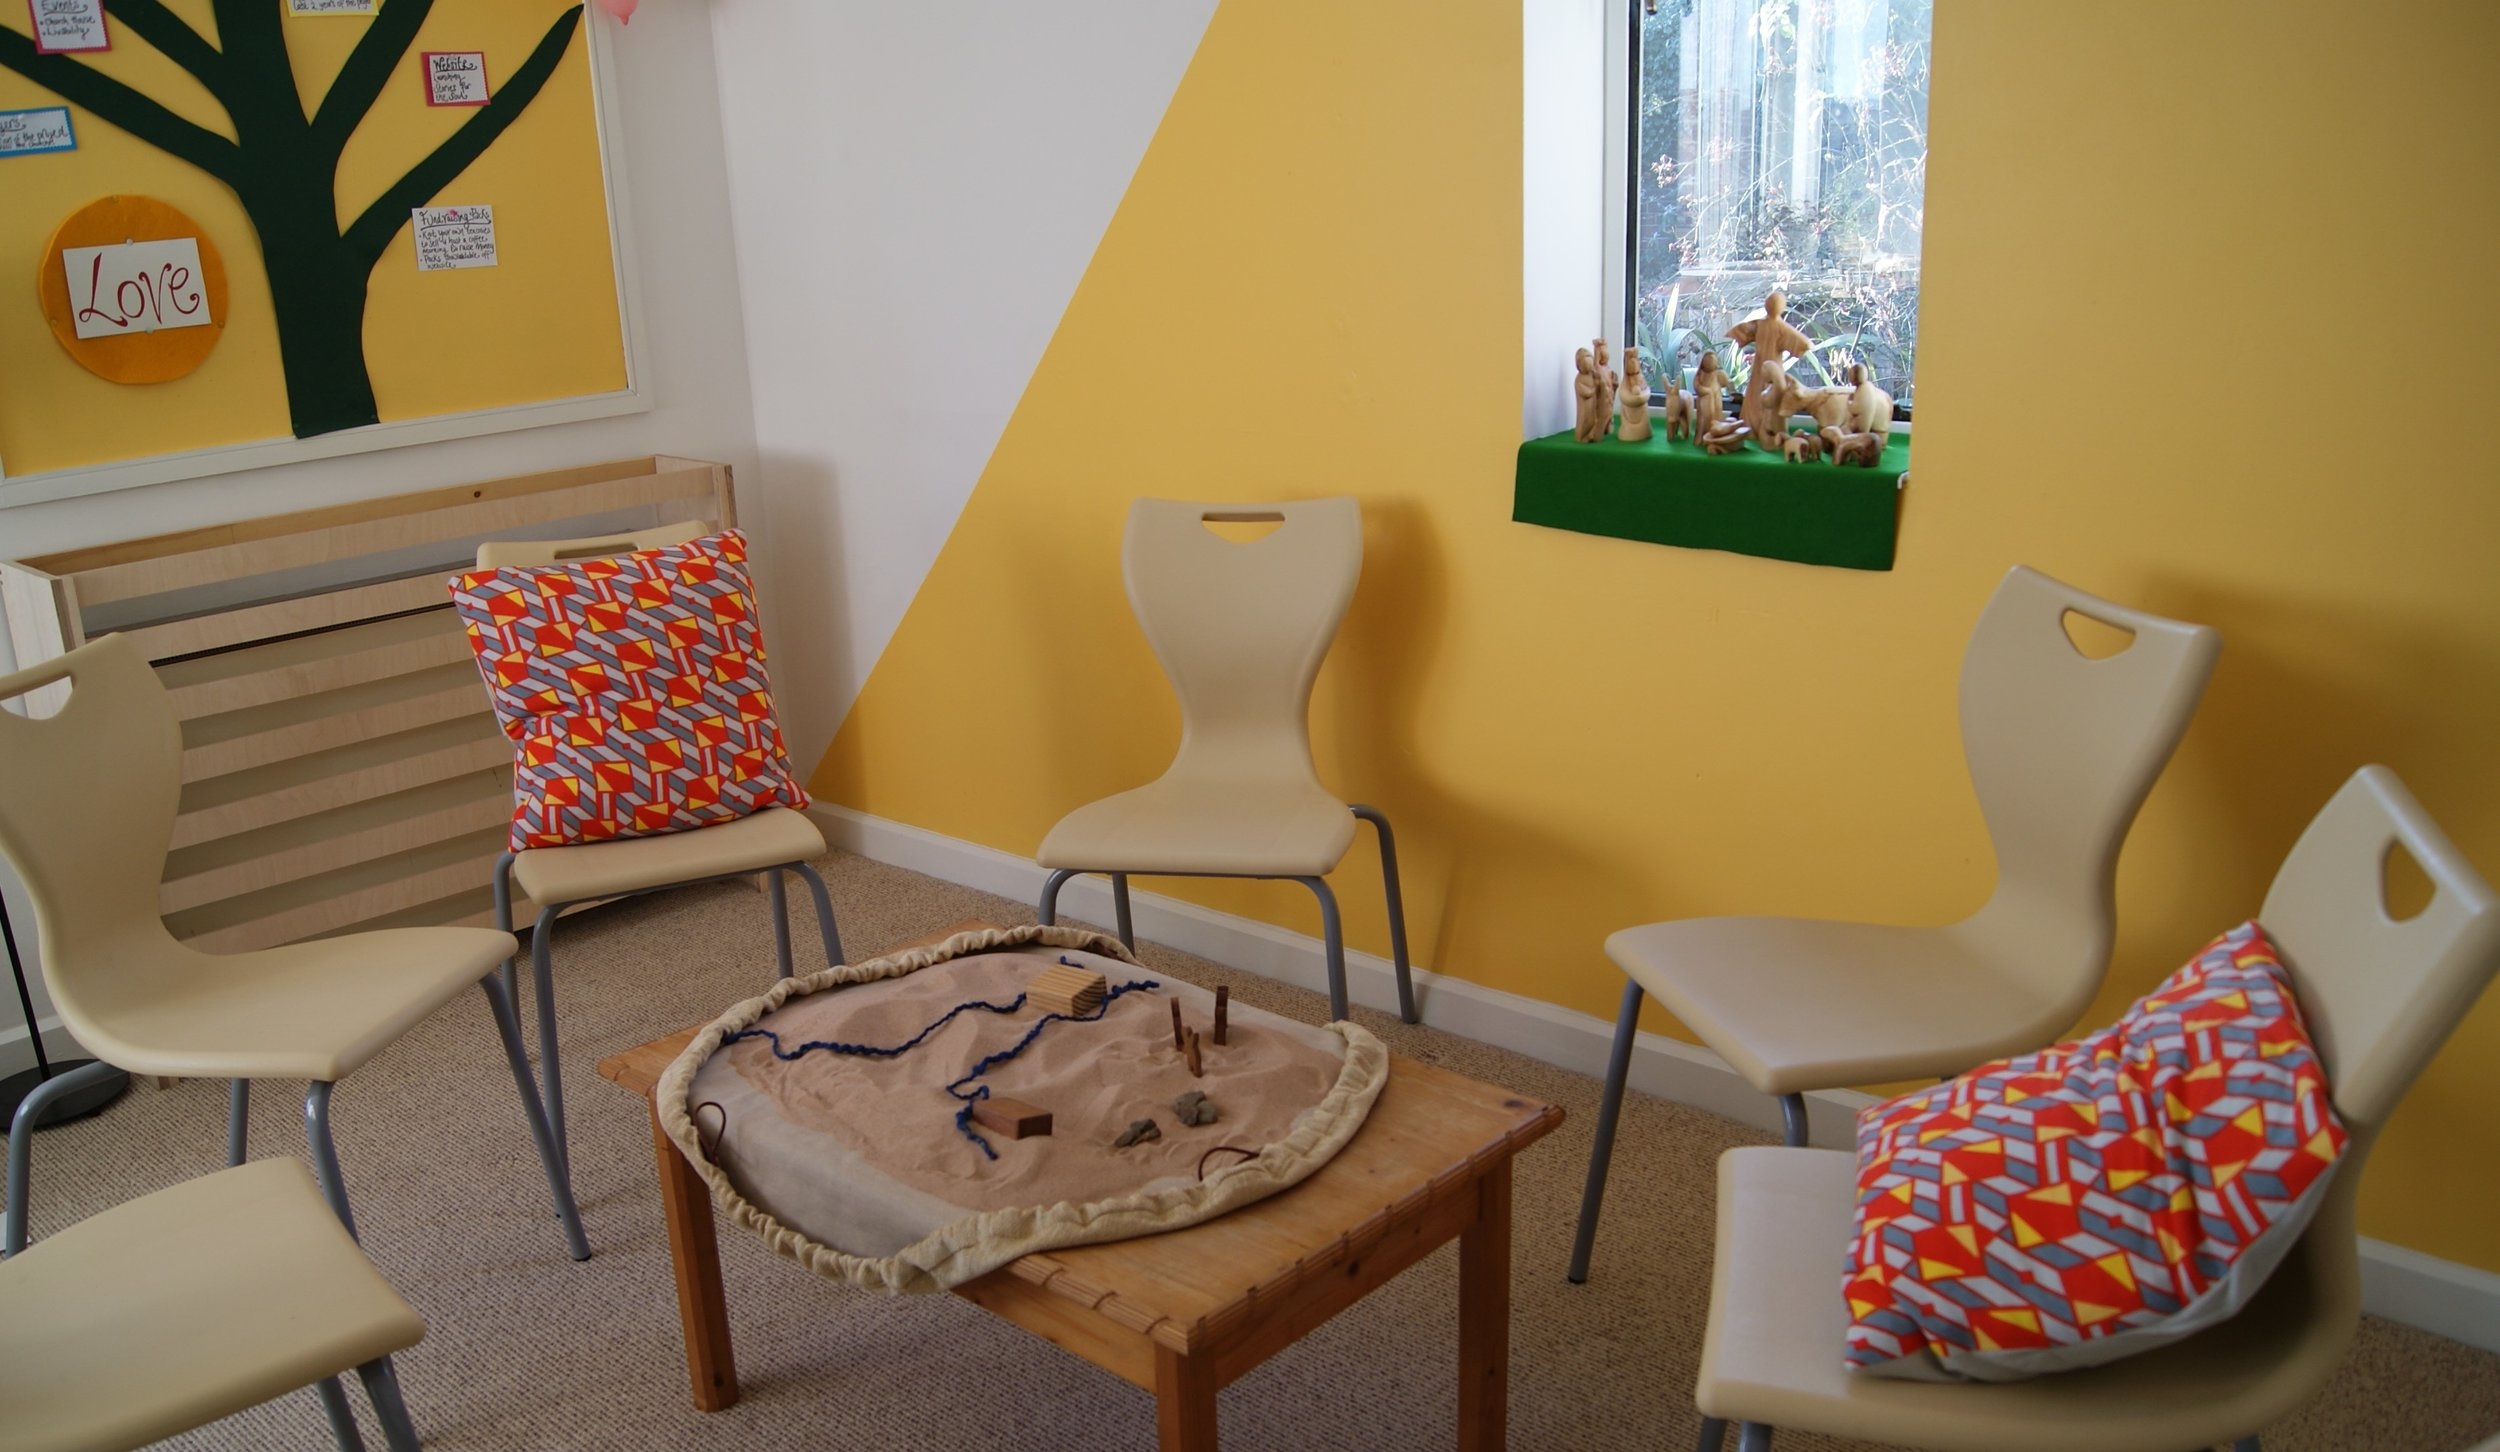 Stories for the Soul office - Our office at St Bart's Training Centre is used for storytelling, creative meetings and training. We painted it like a storytelling wigwam and used the colour of our logo to decorate it. The room is a bright airy space and inspiring to work in. The holy family fits well upon the window ledge as our focal shelf.